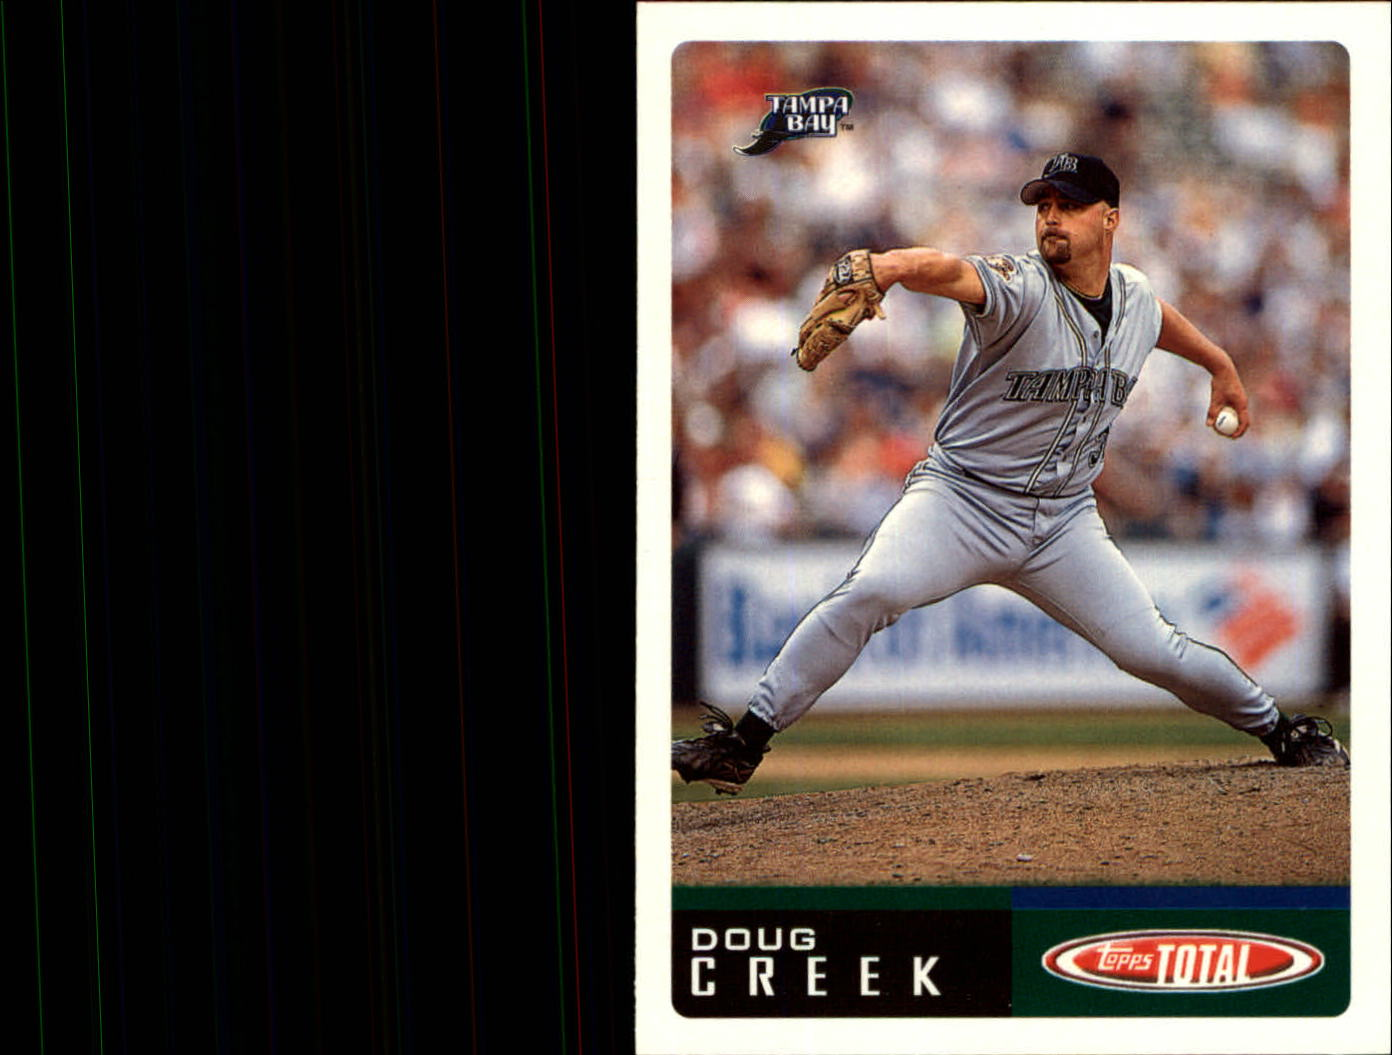 2002 Topps Total #21 Doug Creek